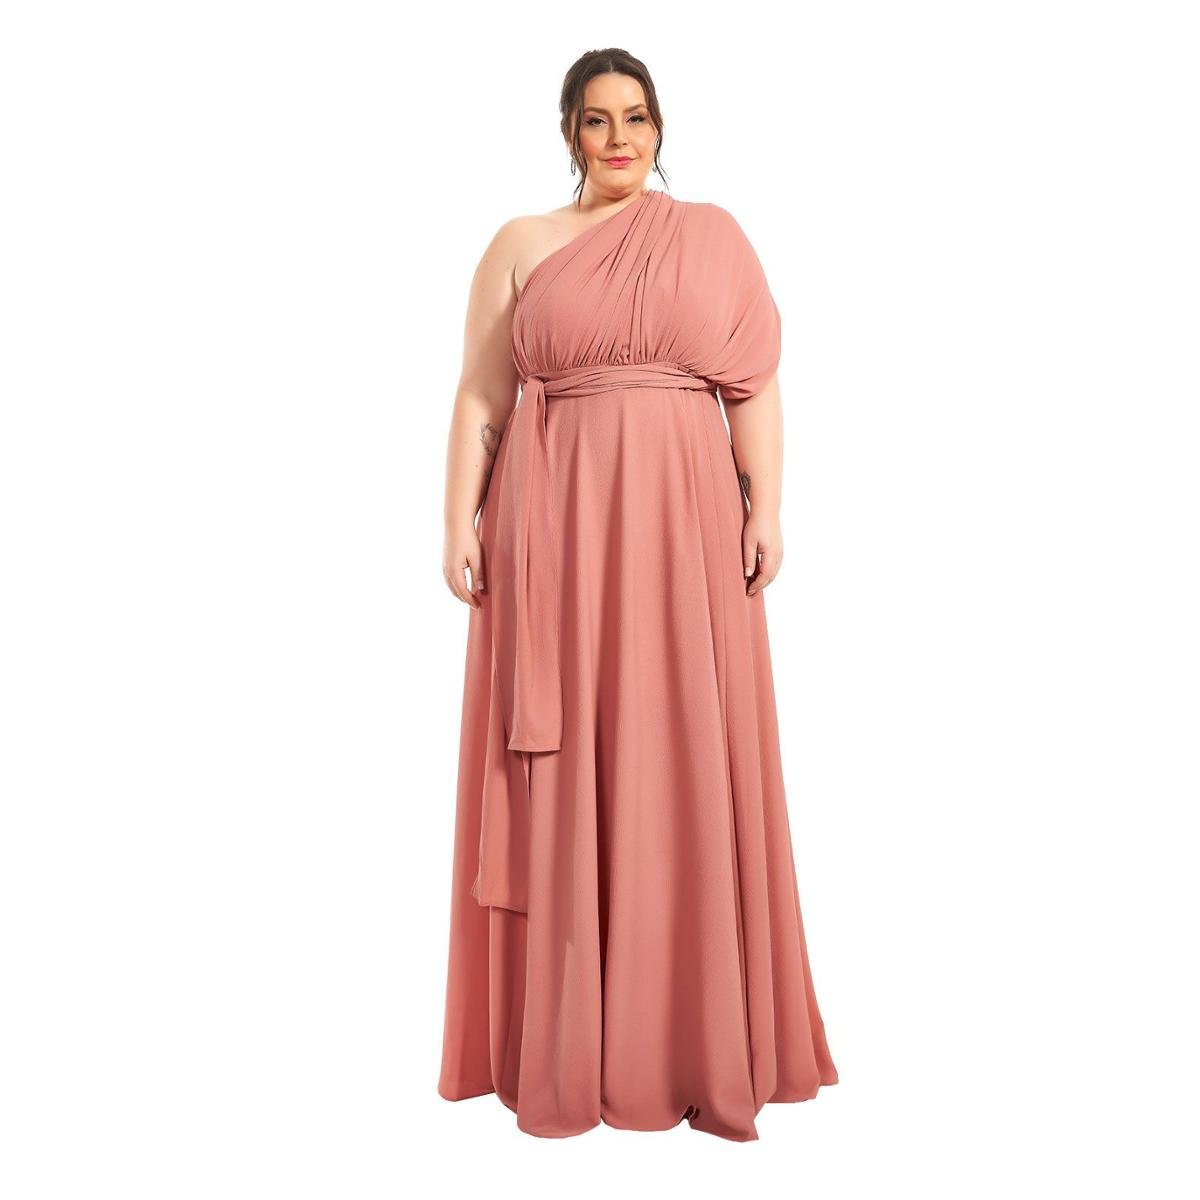 Vestido Plus Size Longo Infinity Lala Dubi Dress Rose Gold